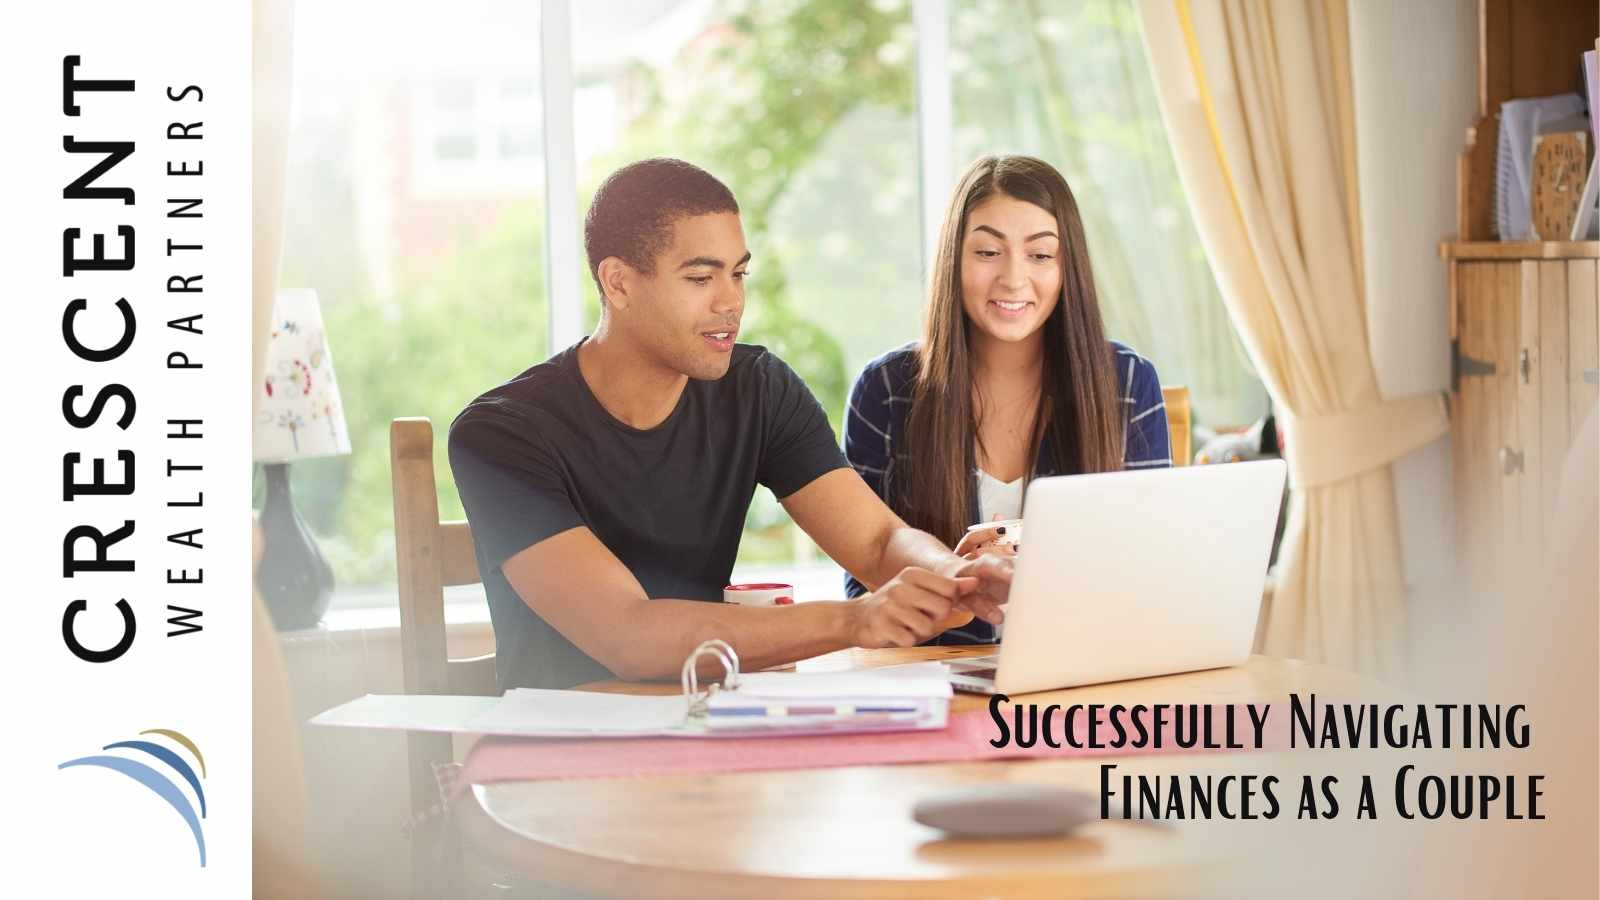 Successfully Navigating Finances as a Couple